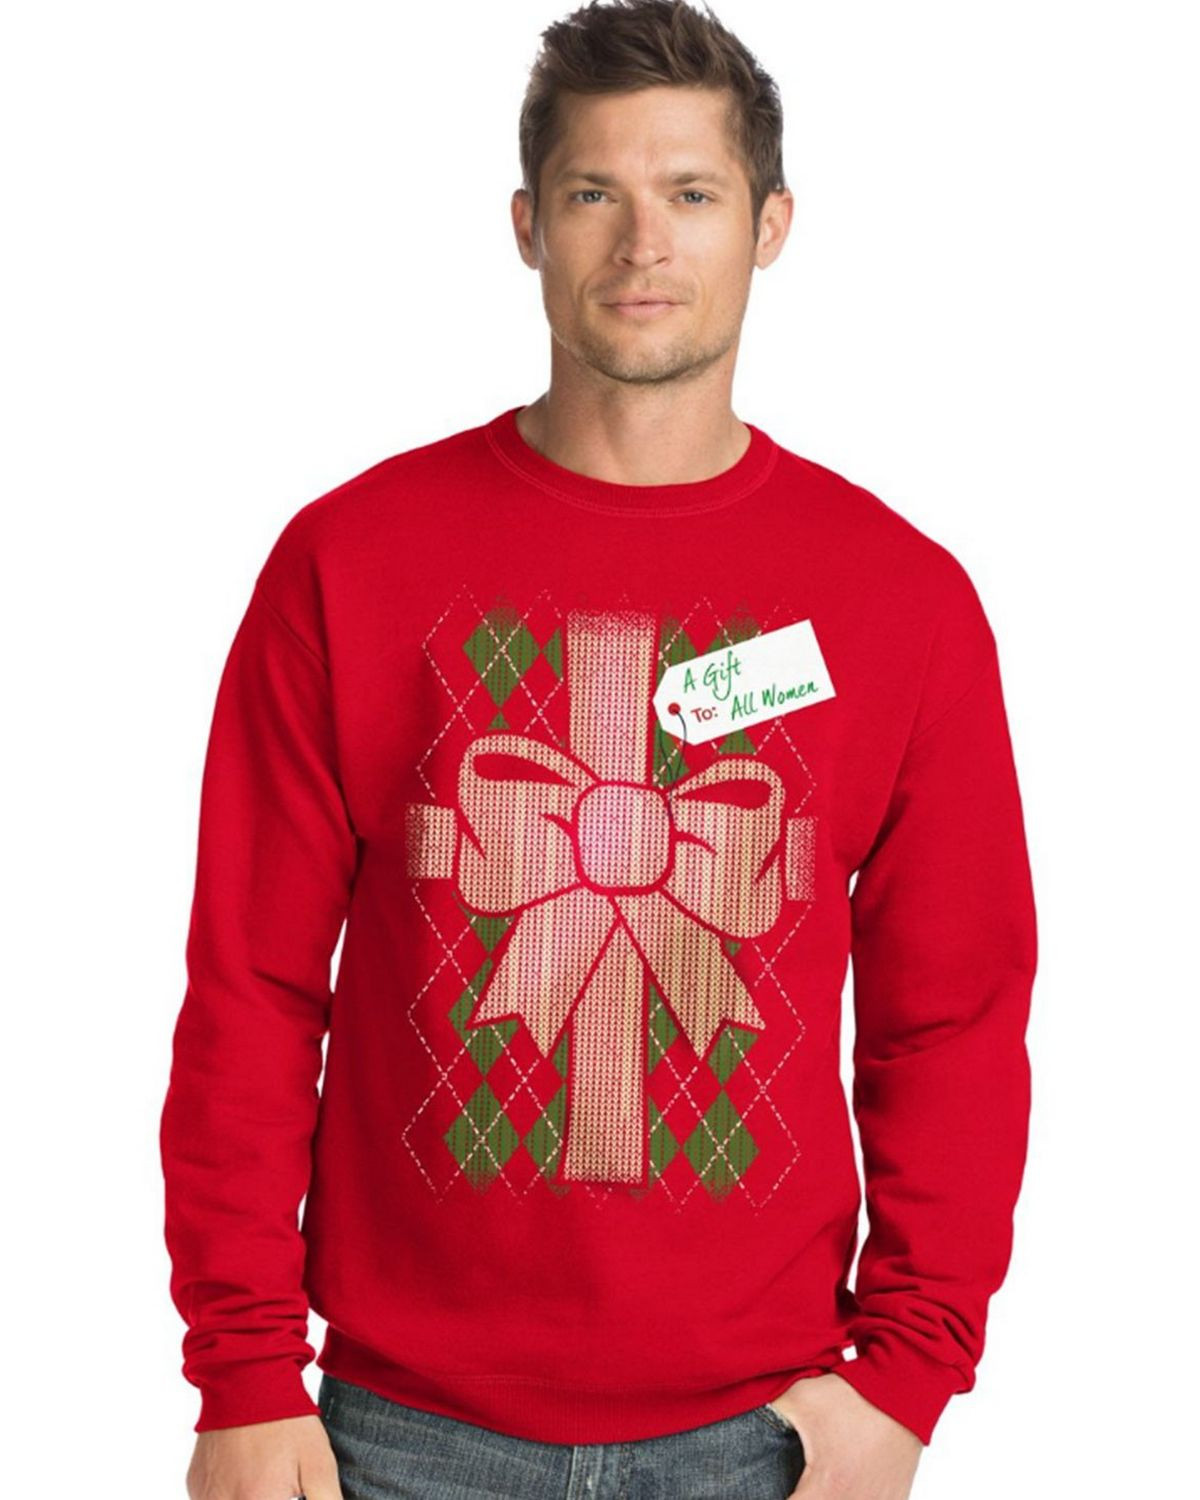 Hanes O5A11 Men's Ugly Christmas Sweatshirt - Gift To All Women/Best Red - S #gift